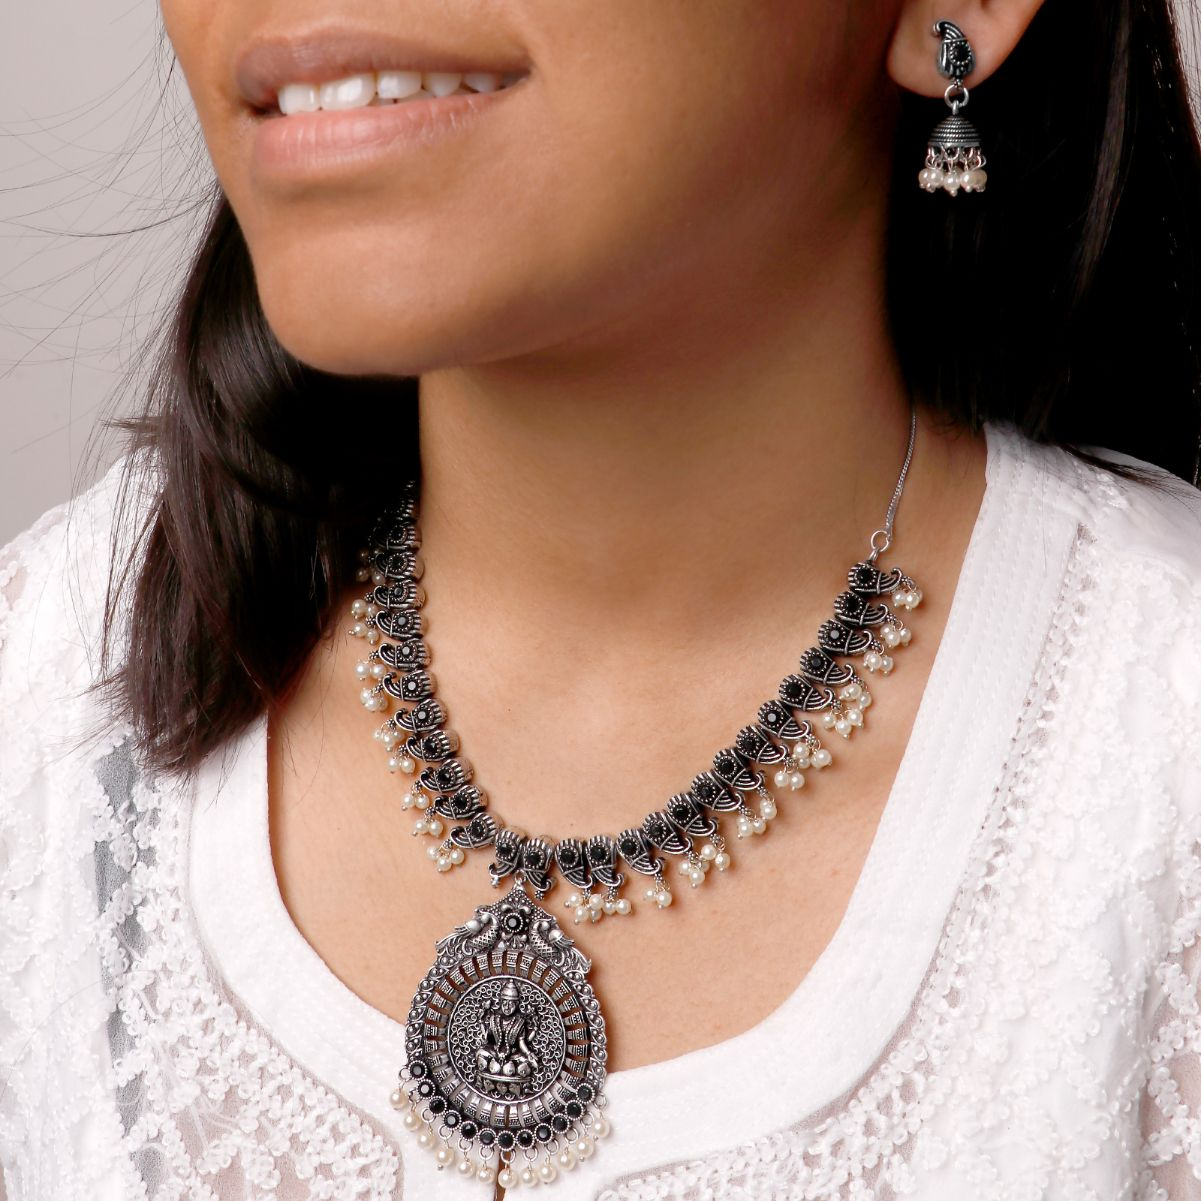 Ikshan Black Silver Oxidized Necklace Set - Teejh